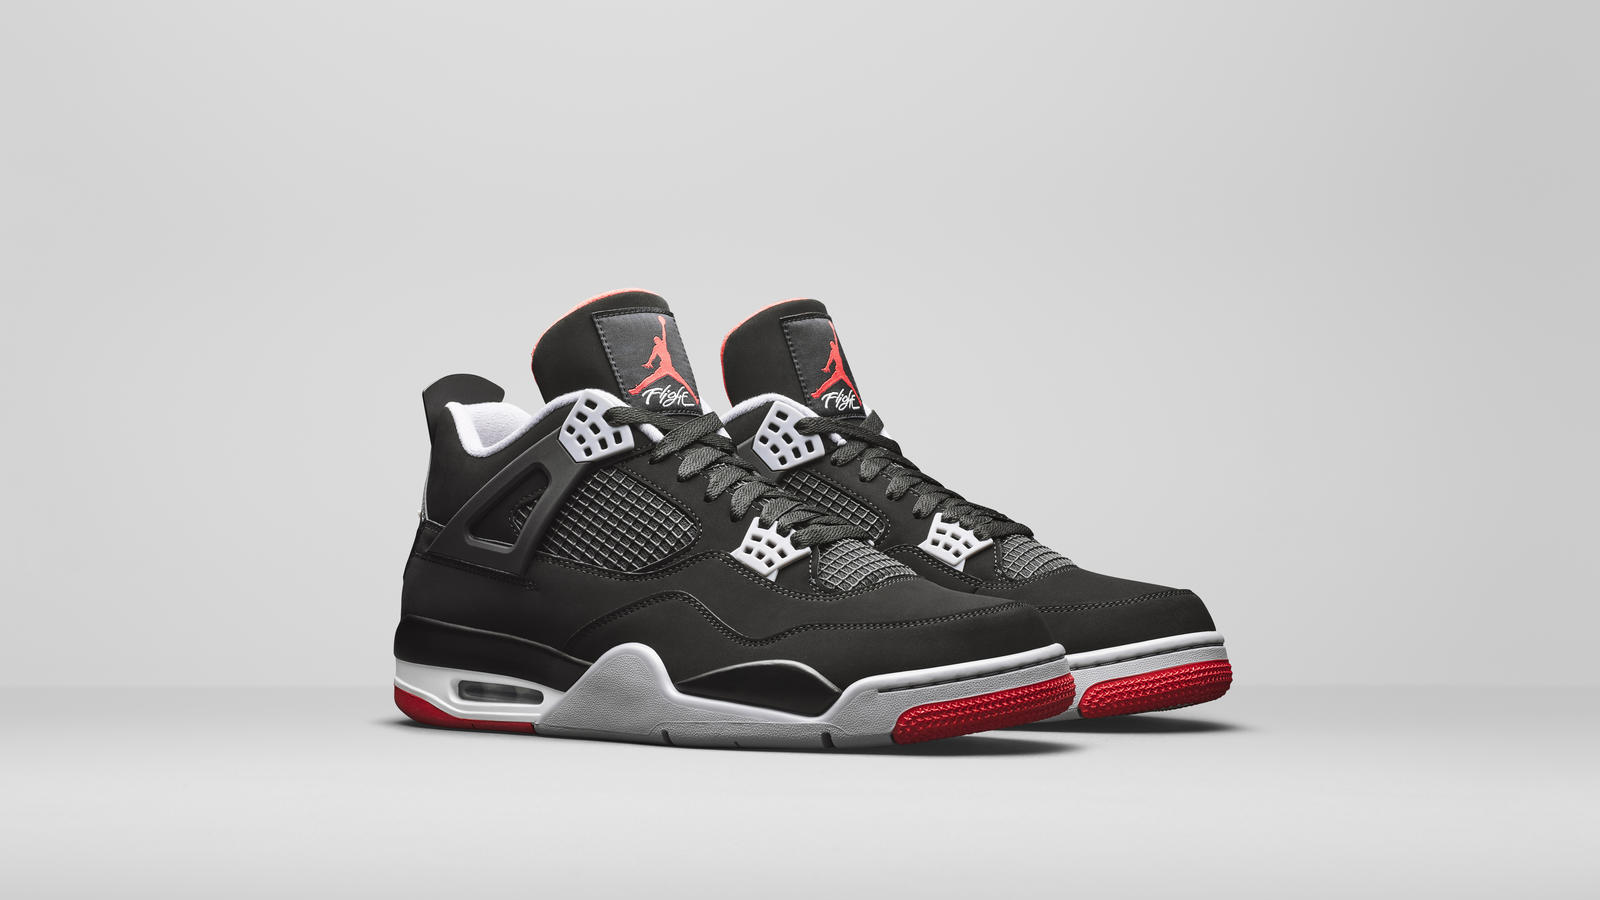 43ef0ff4714 Air Jordan 4 Bred Official Images and Release Date - Nike News